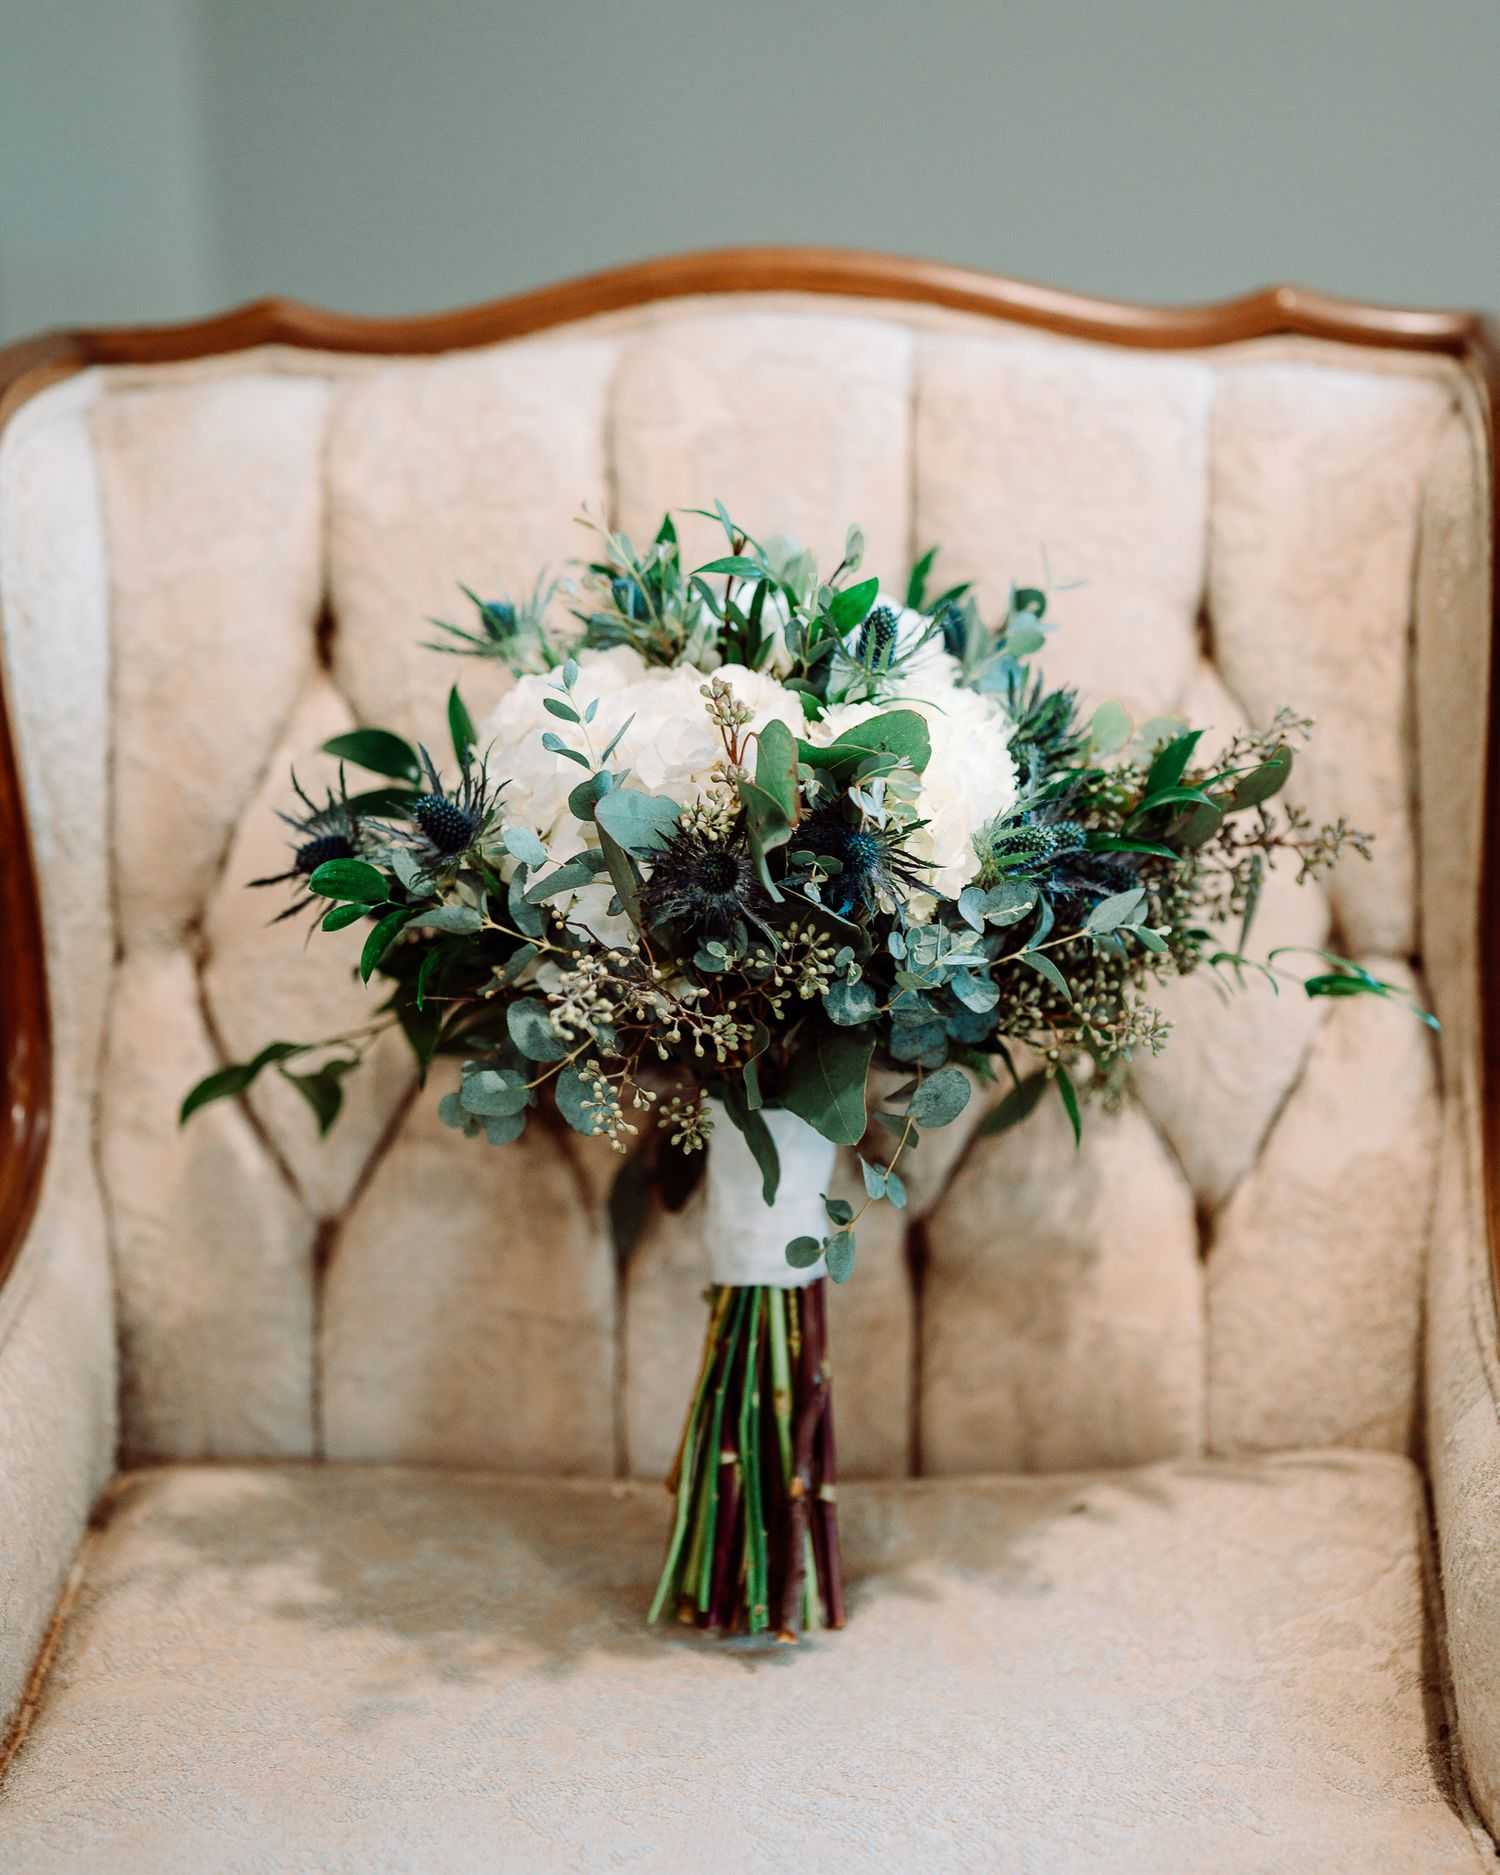 Bride bouquet on chair at The Blessed Barn in Aynor, SC, by PHV Photo